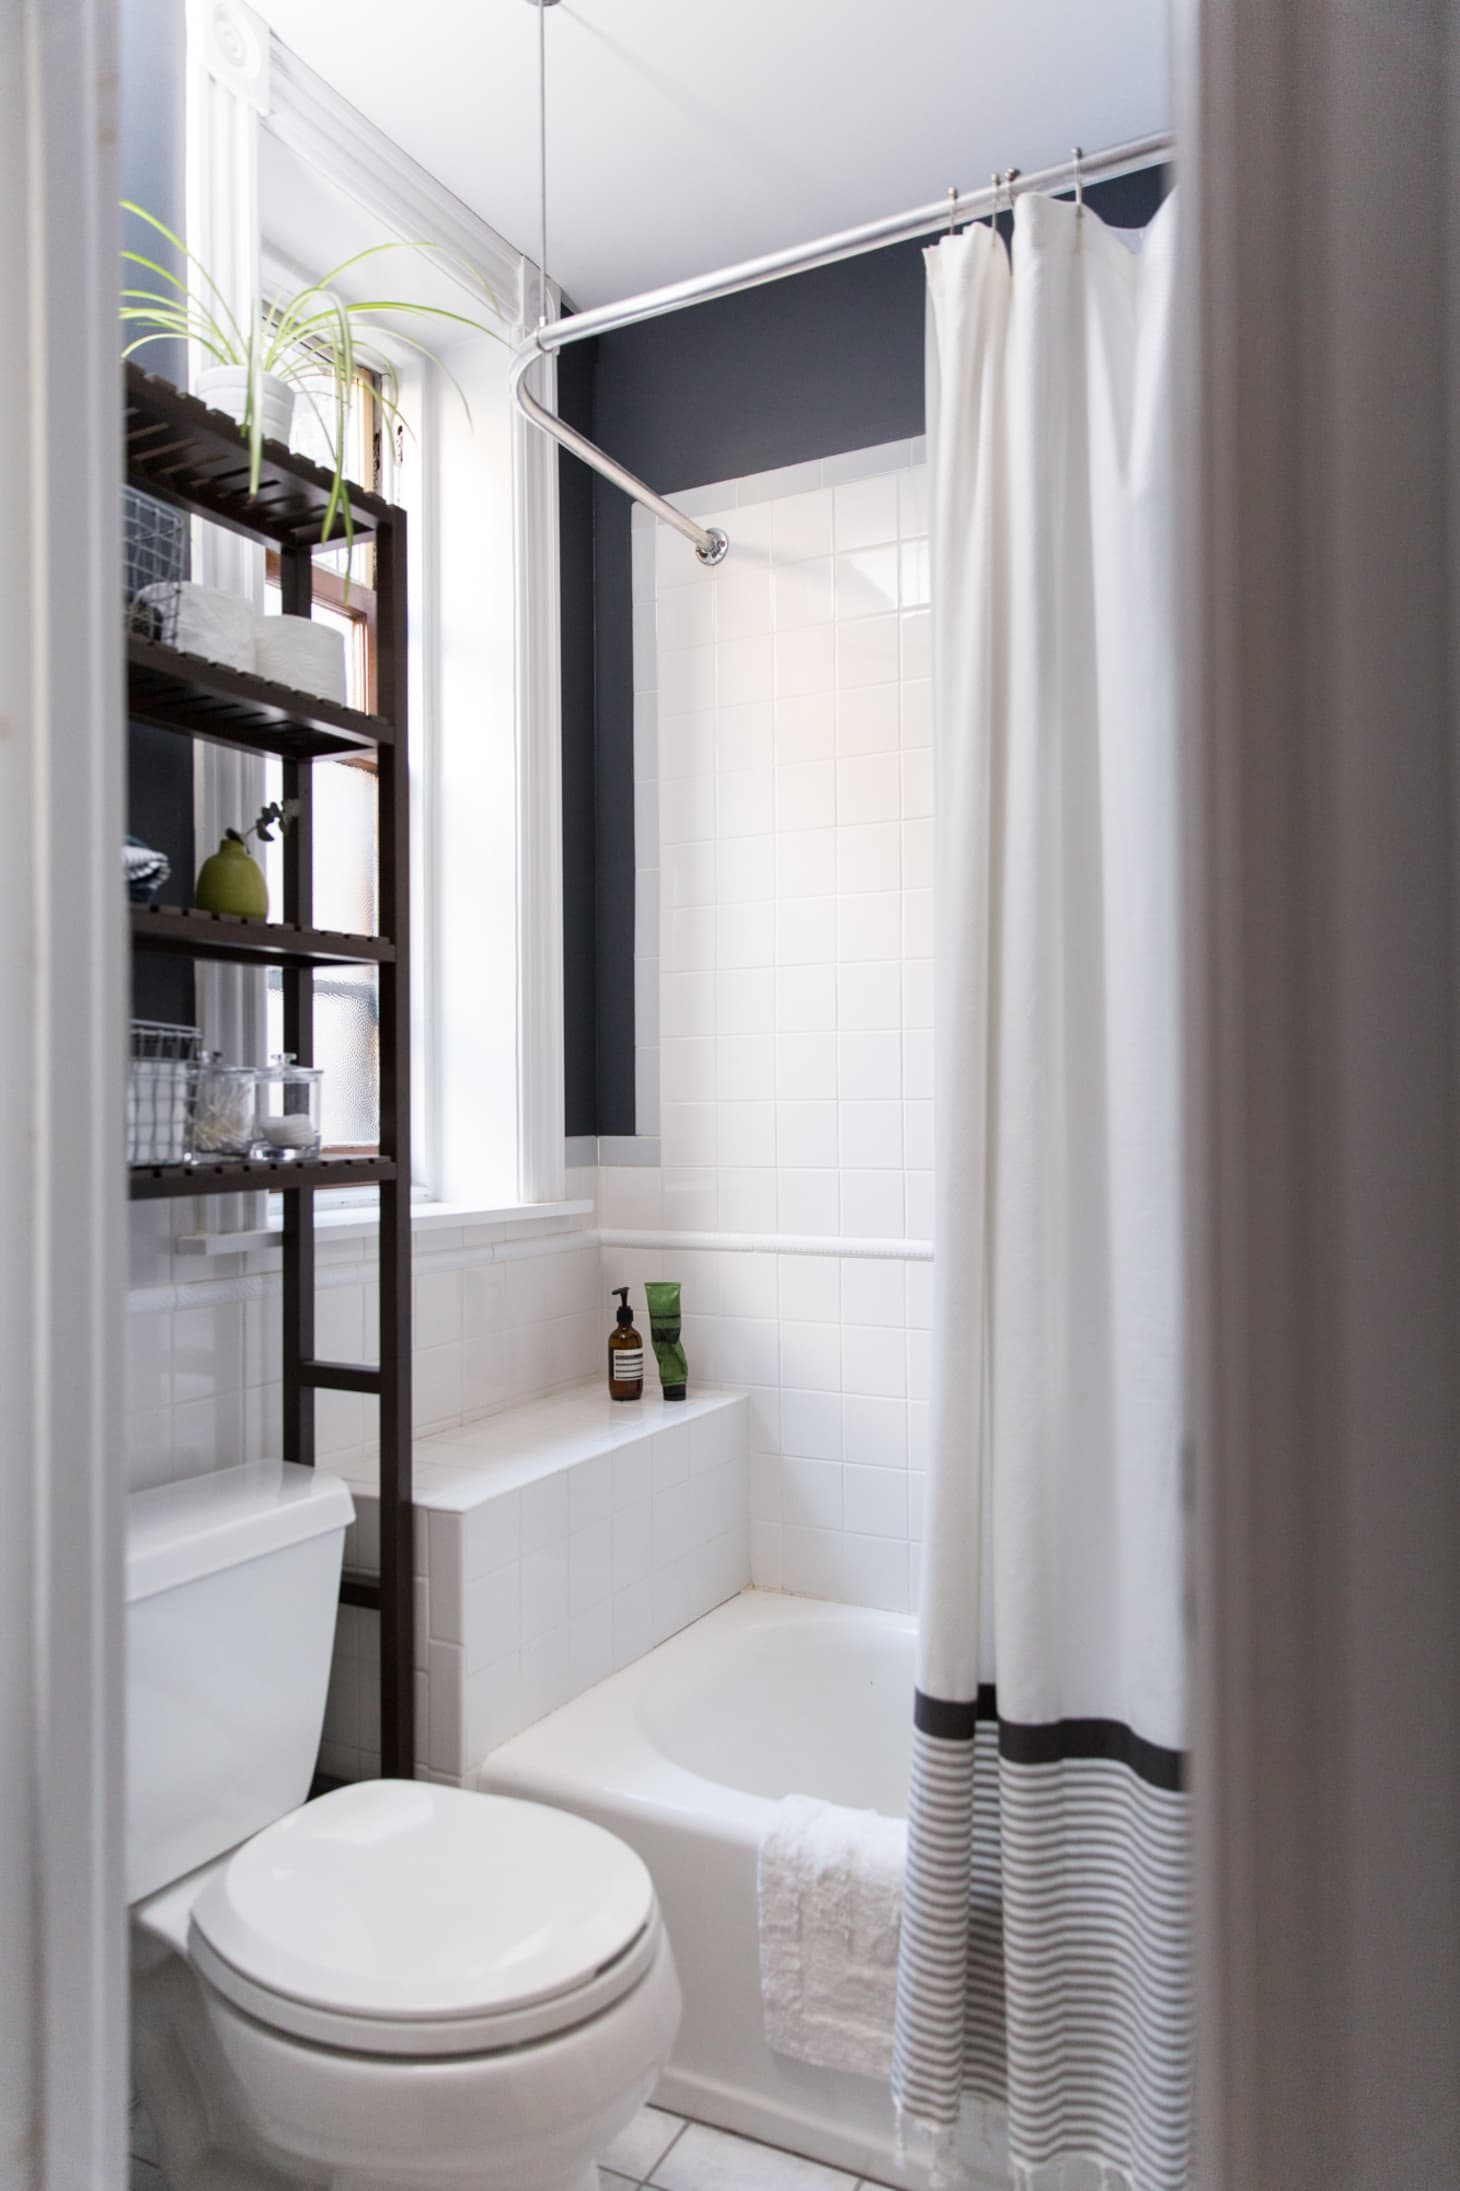 Best Paint Colors for Small Bathrooms | Apartment Therapy on Small Apartment Bathroom  id=25068